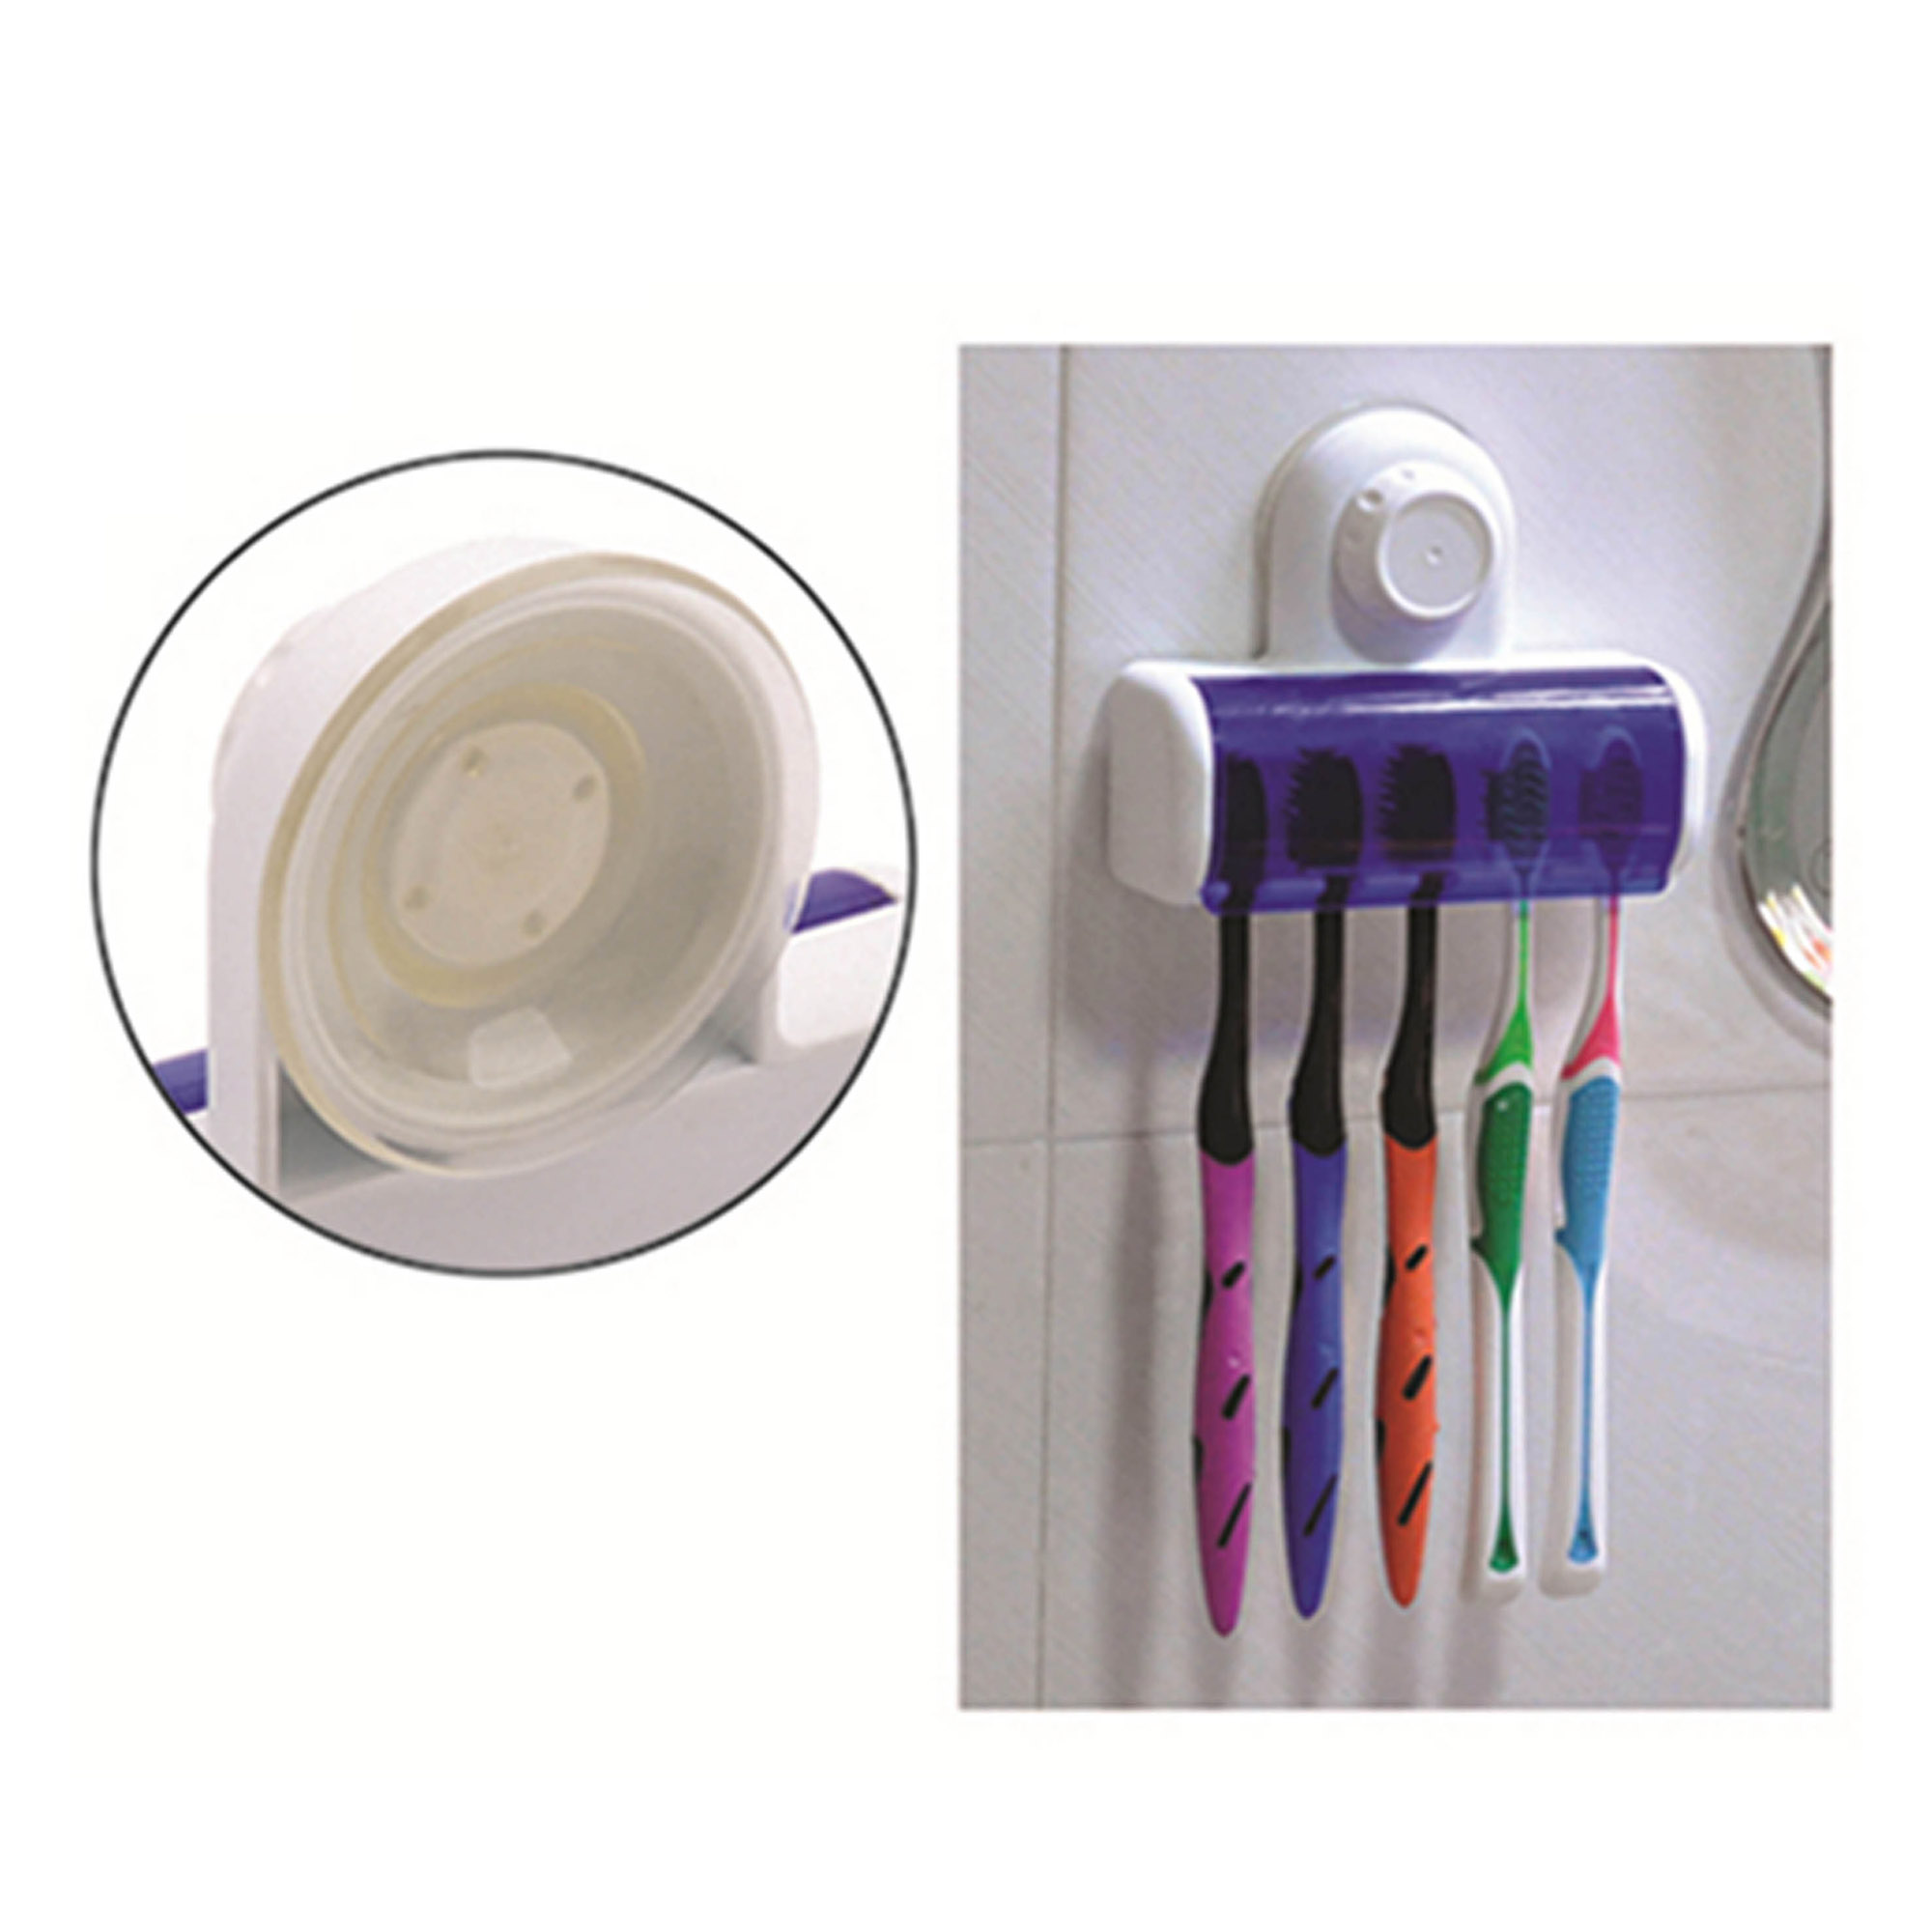 TOOTHBRUSH HOLDER - 1 Colour Print